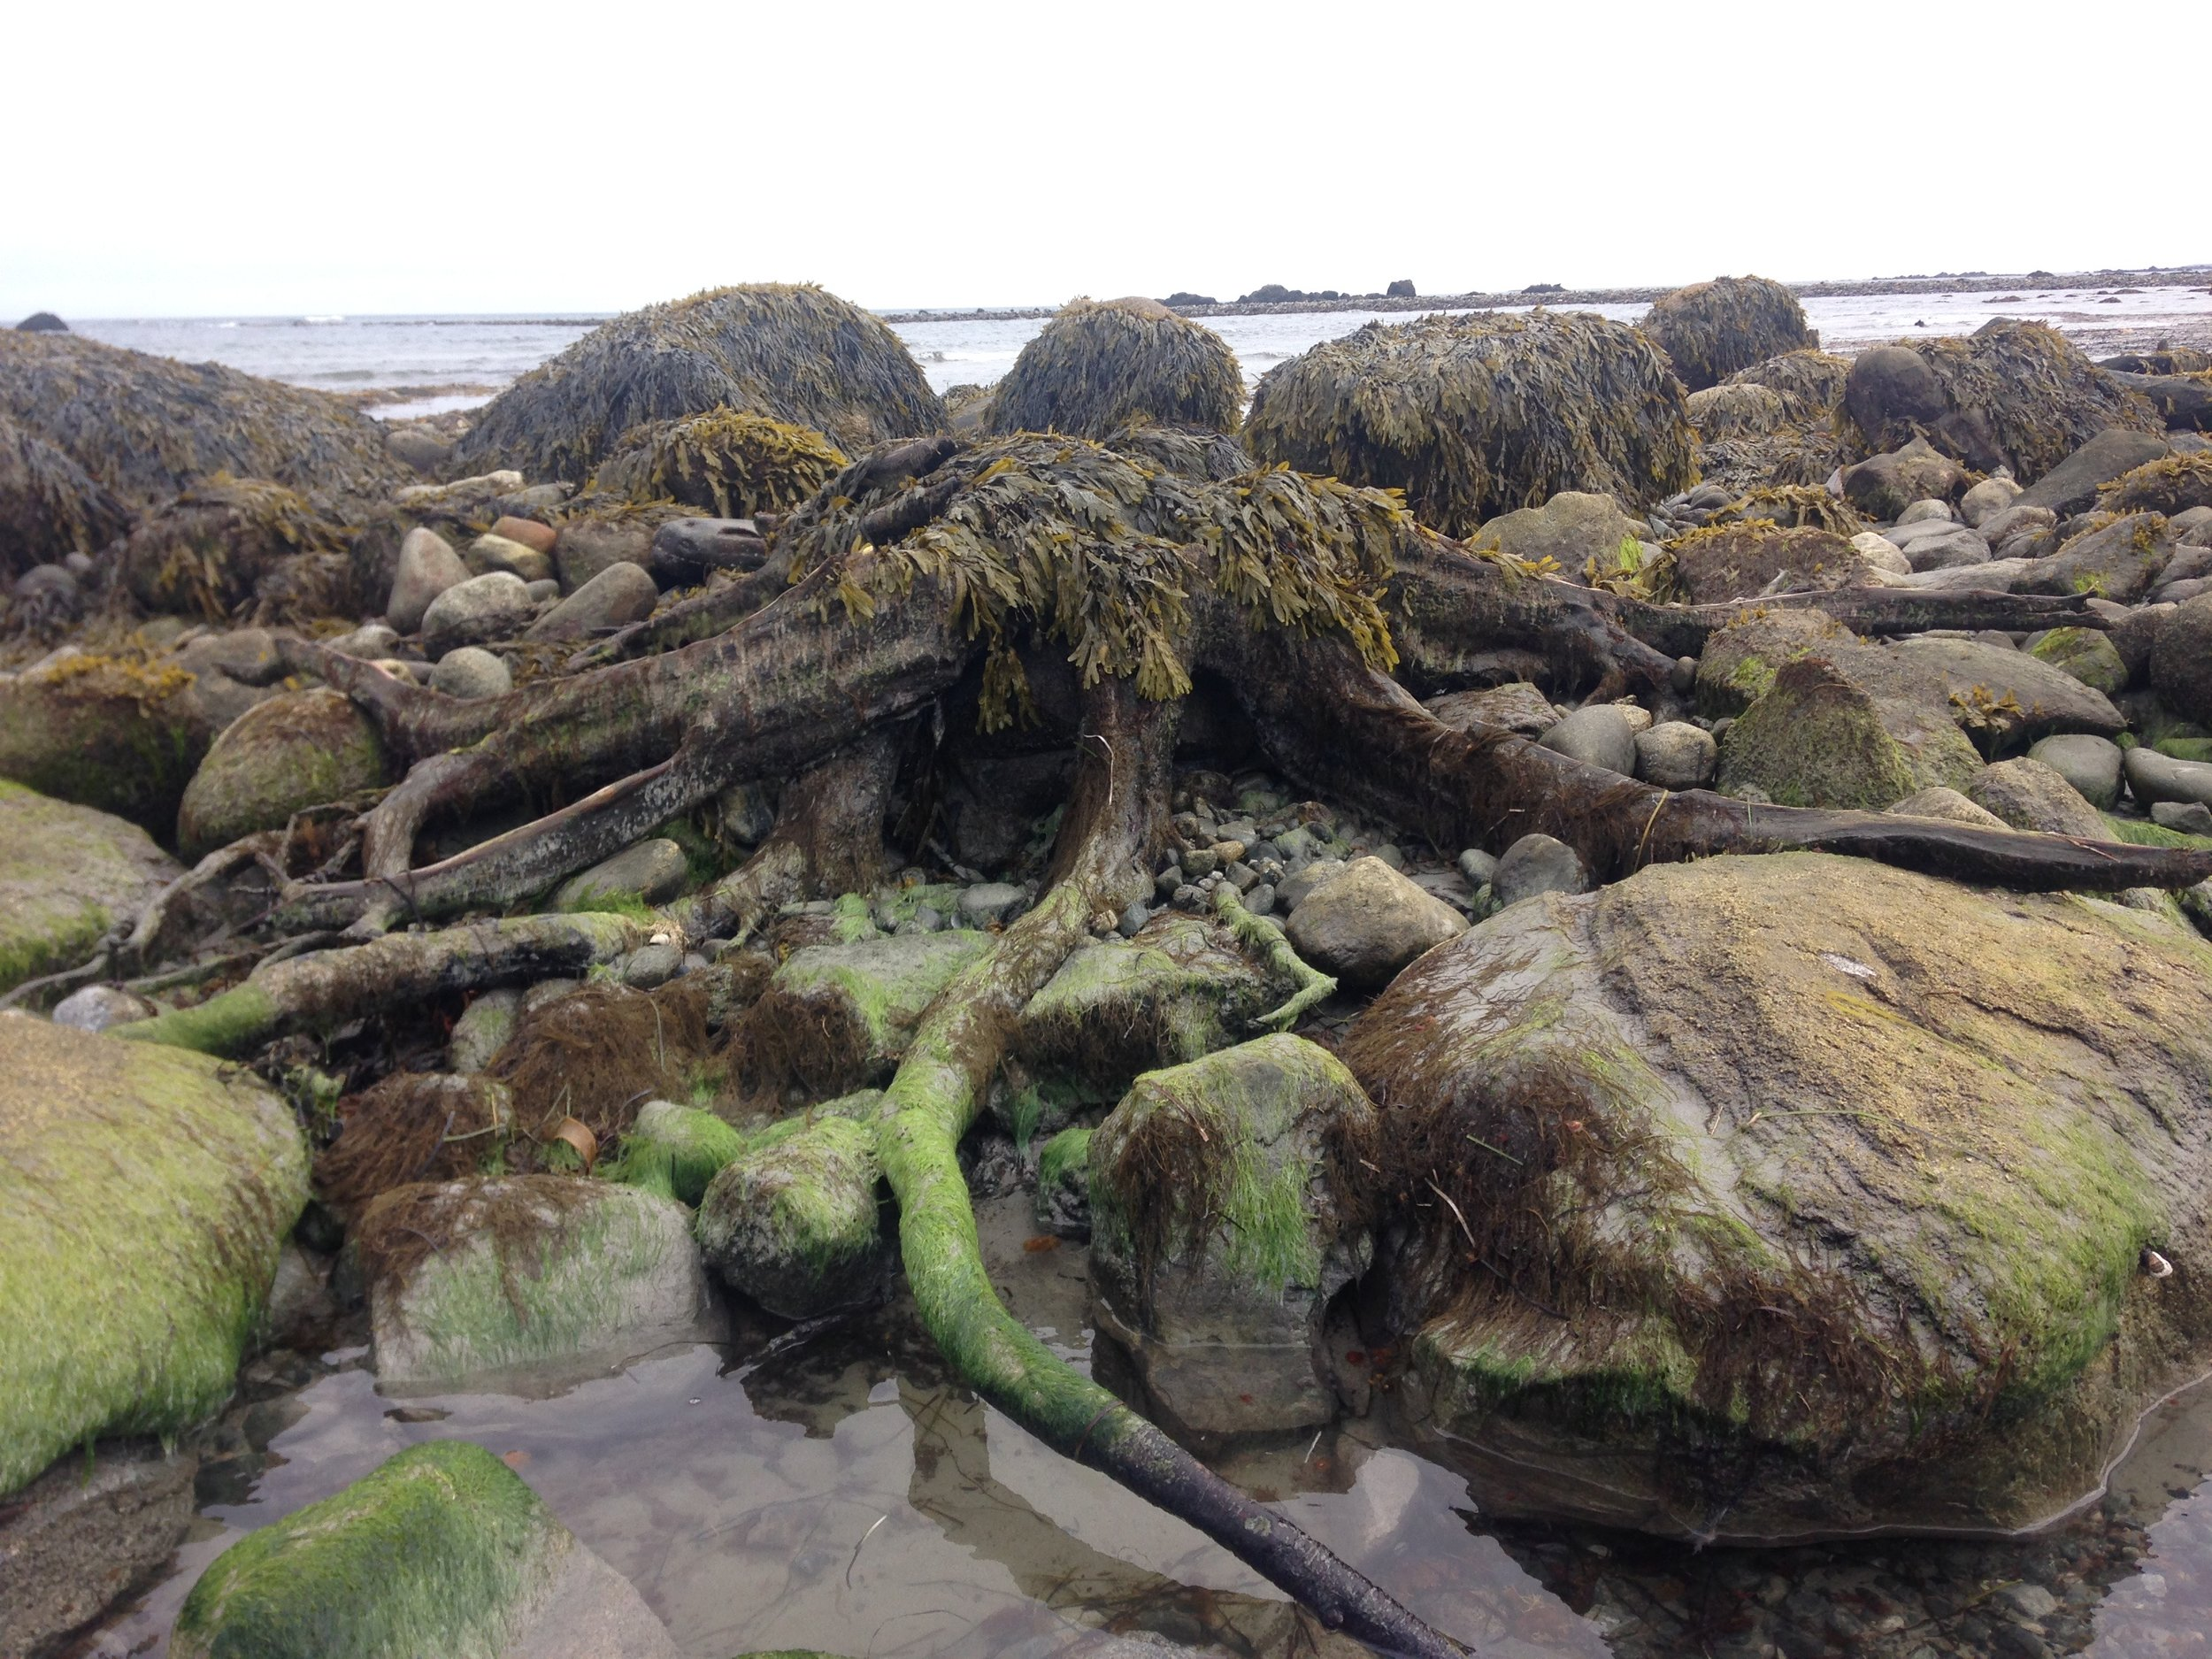 One of the many tree stumps we found in the drowned forest